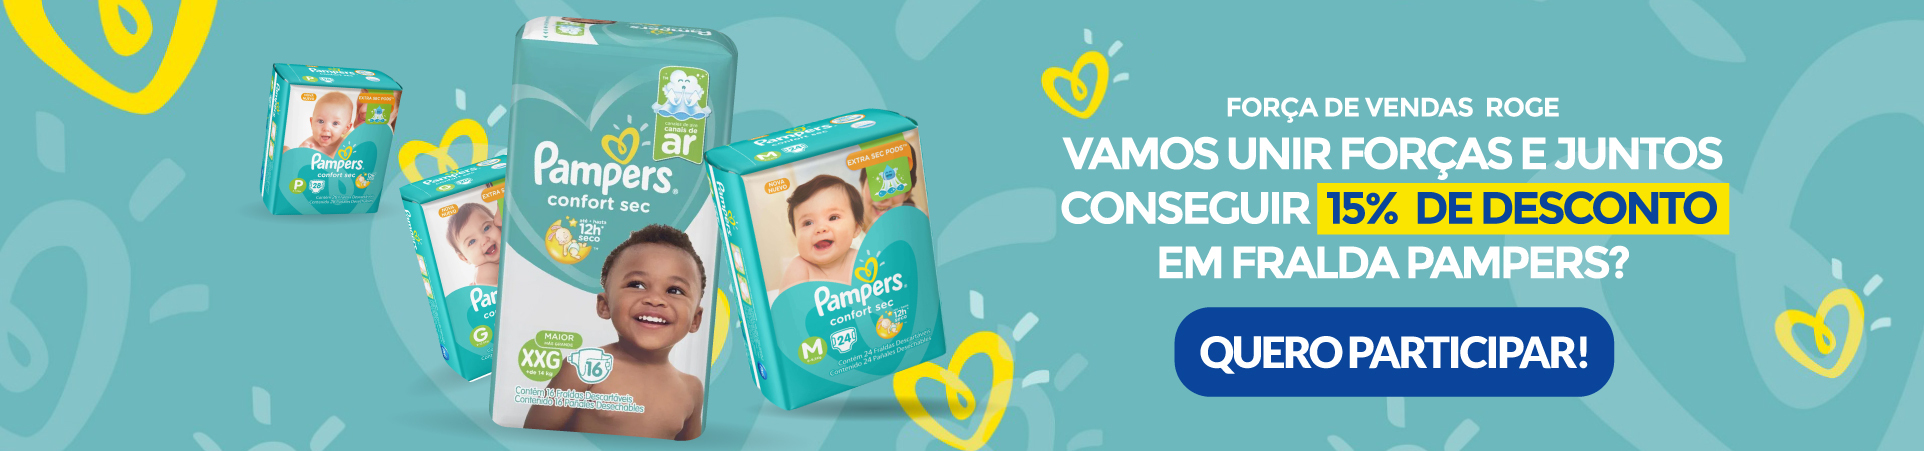 Banner P&G Pampers